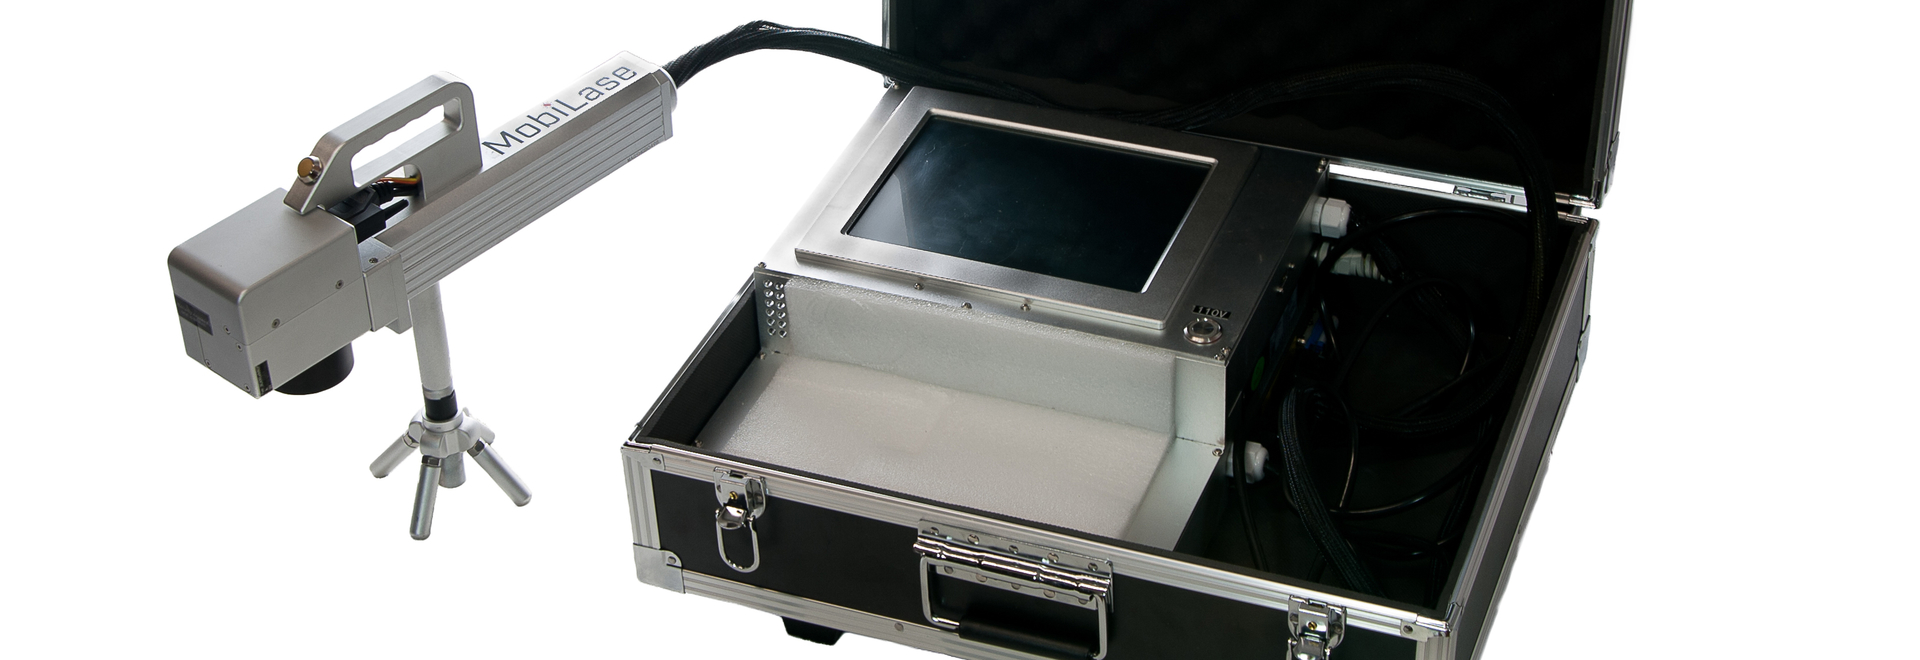 The All-In-One Industrial Fiber Laser Marking Unit in a Suitcase